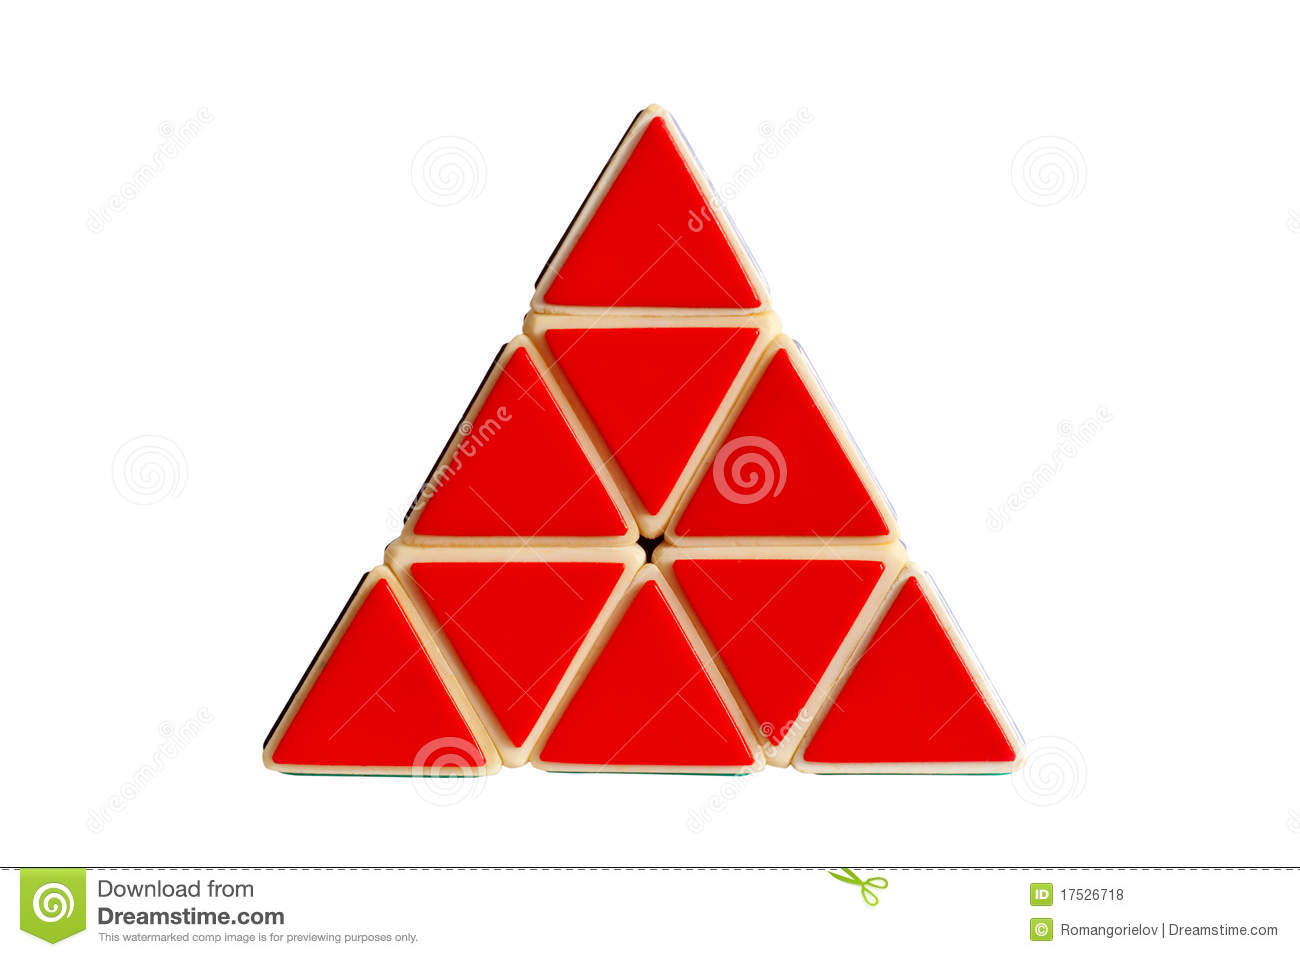 Red Triangle (Pacific Ocean) - Wikipedia